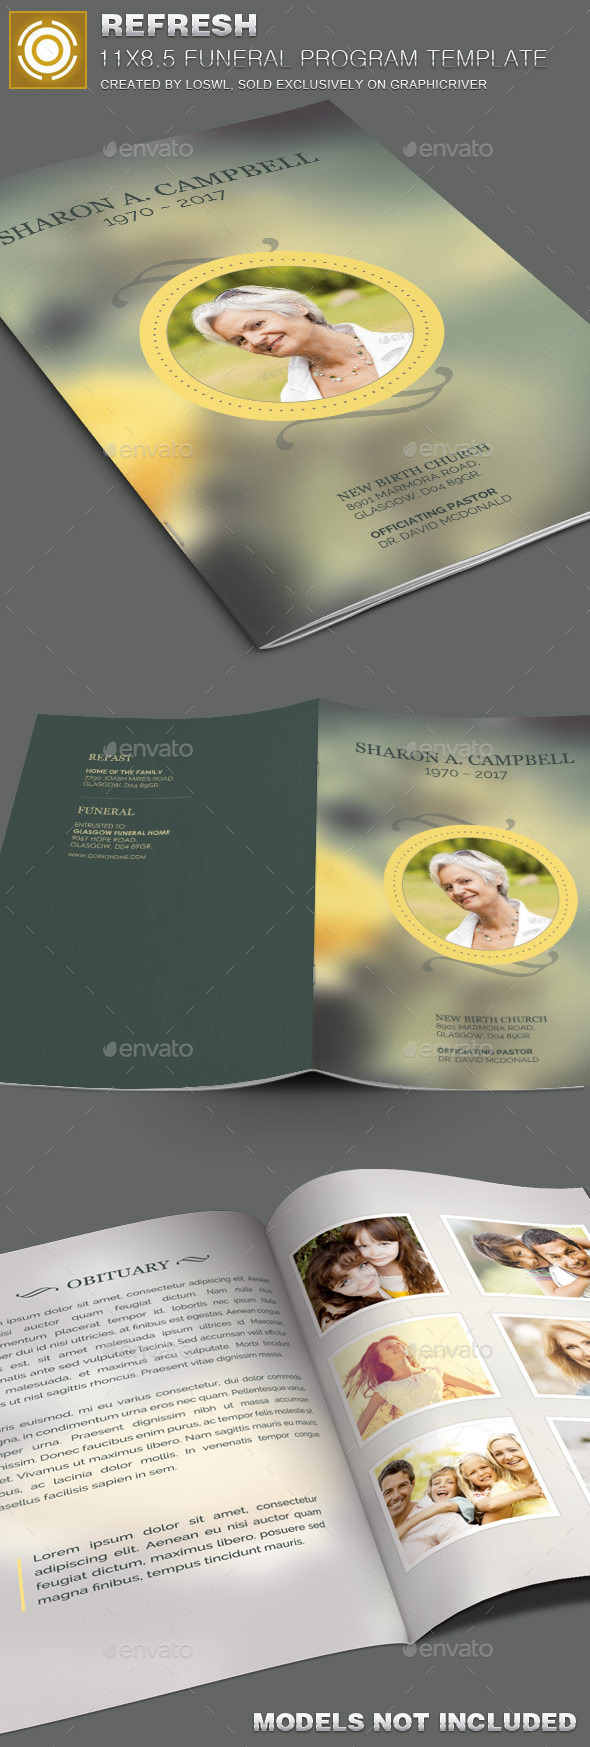 GraphicRiver Refresh Funeral Program Template 10100503